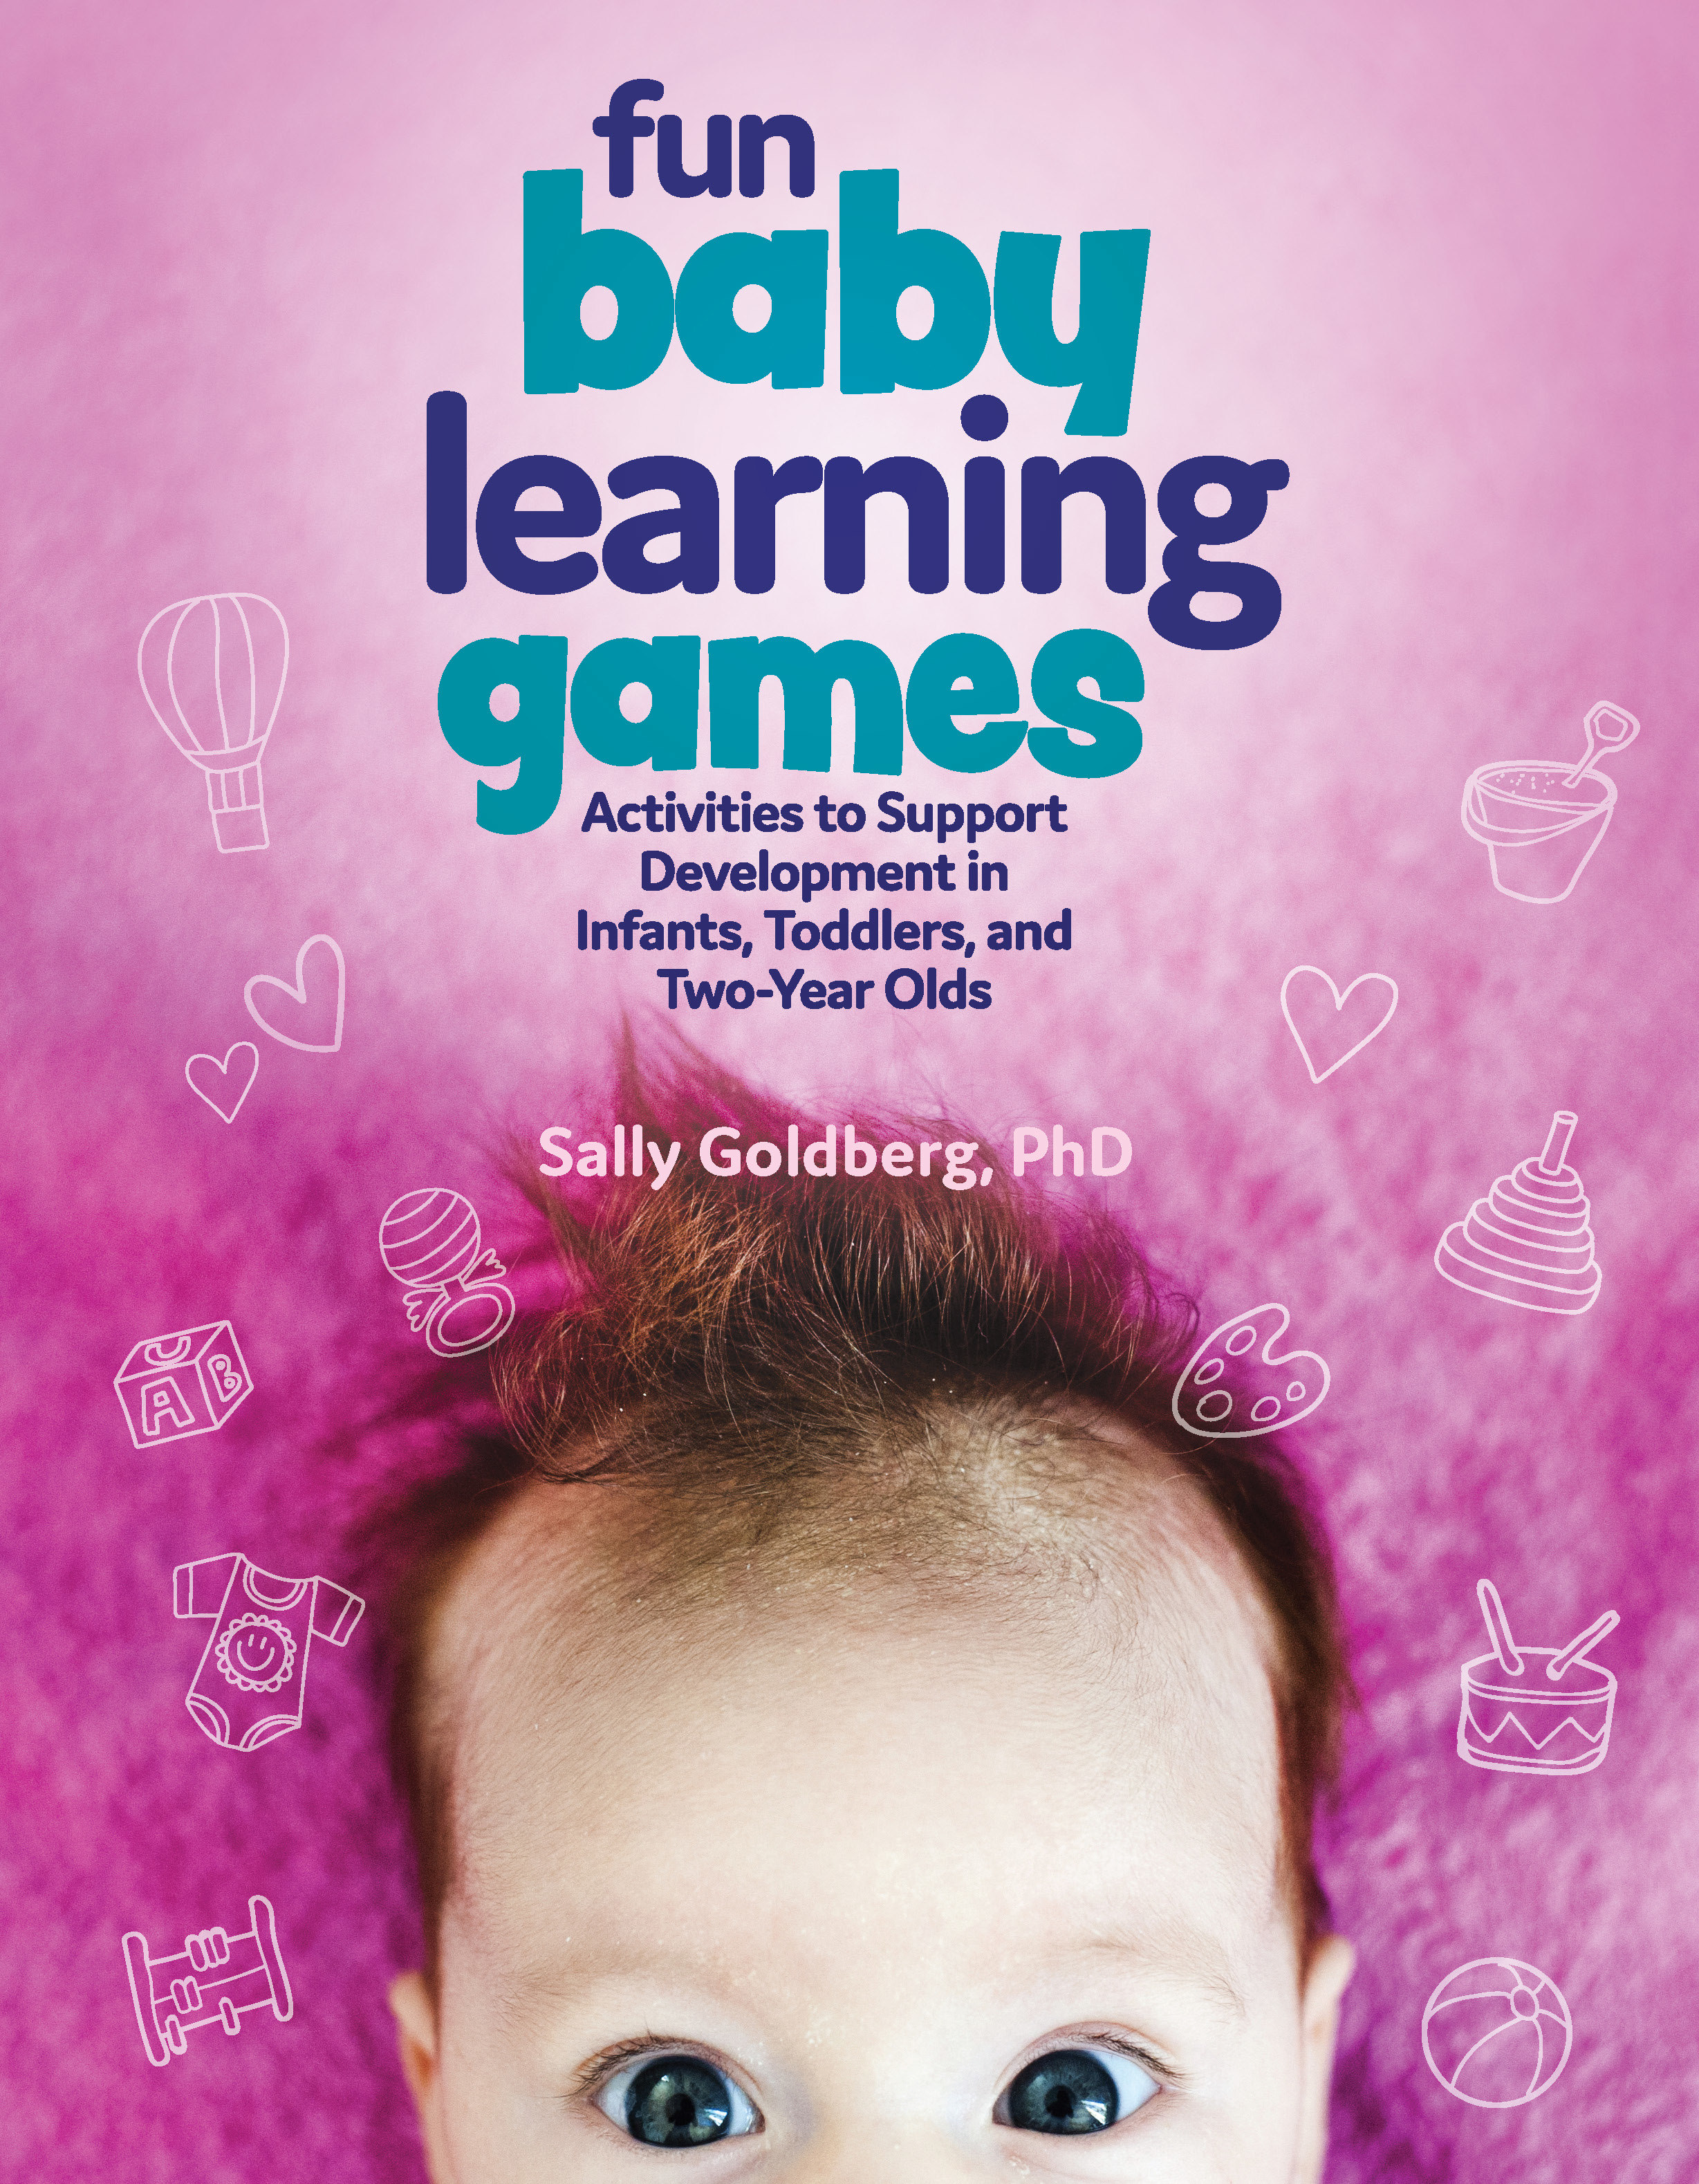 Fun Baby Learning Games: Activities to Support Development in Infants, Toddlers, and Two-Year-Olds